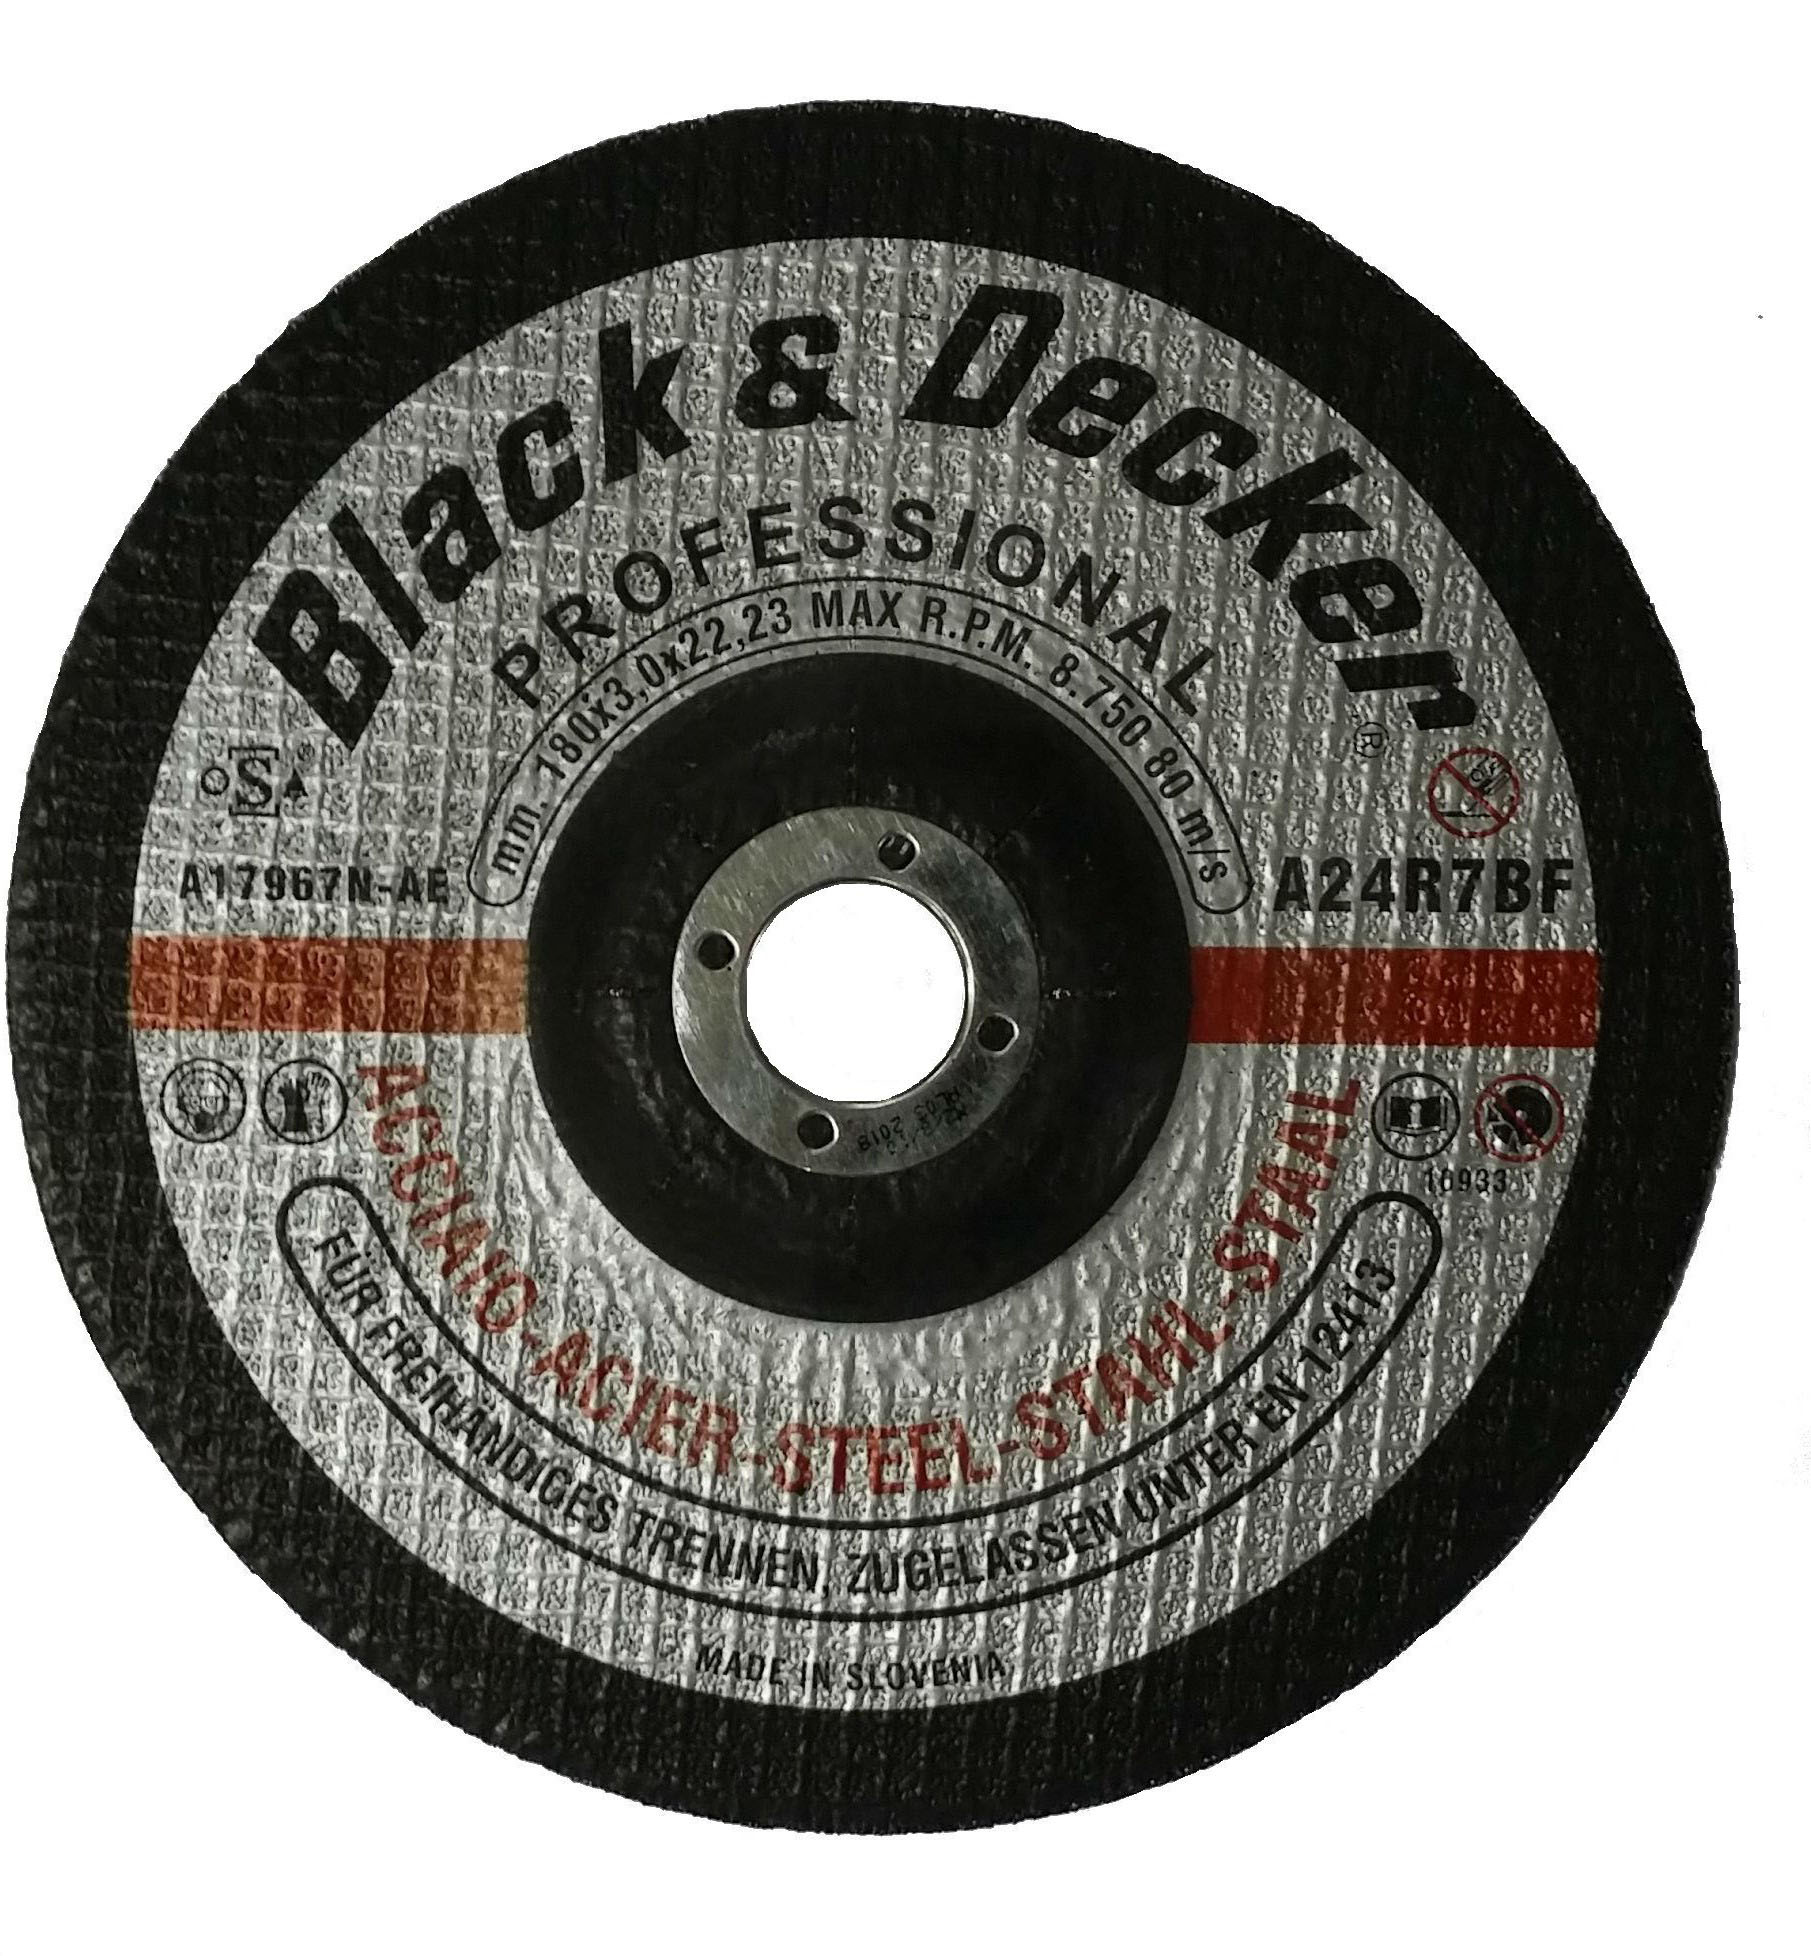 Black & Decker A17967N-AE - 7in Metal Cutting Disc